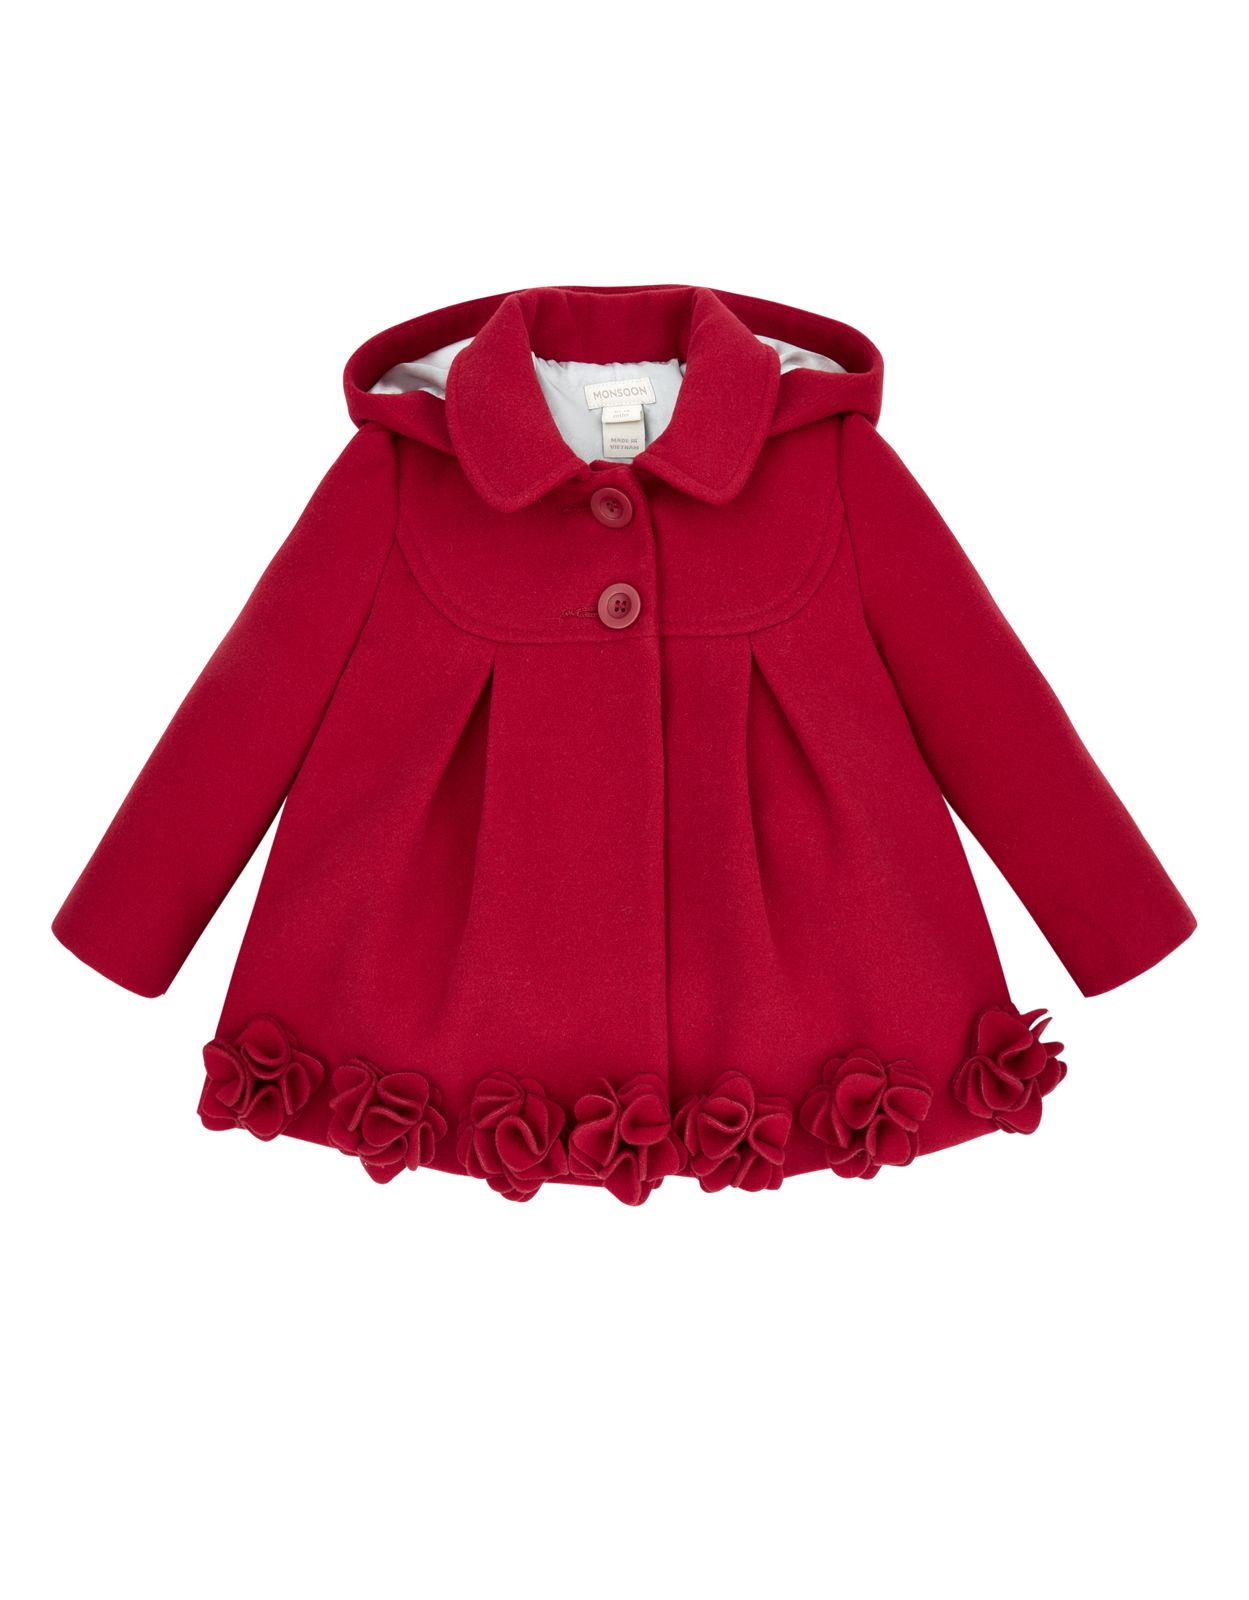 9a4185873 BABY ROSALIE ROSES COAT - Absolutely gorgeous coat for baby girls and  toddlers. http: